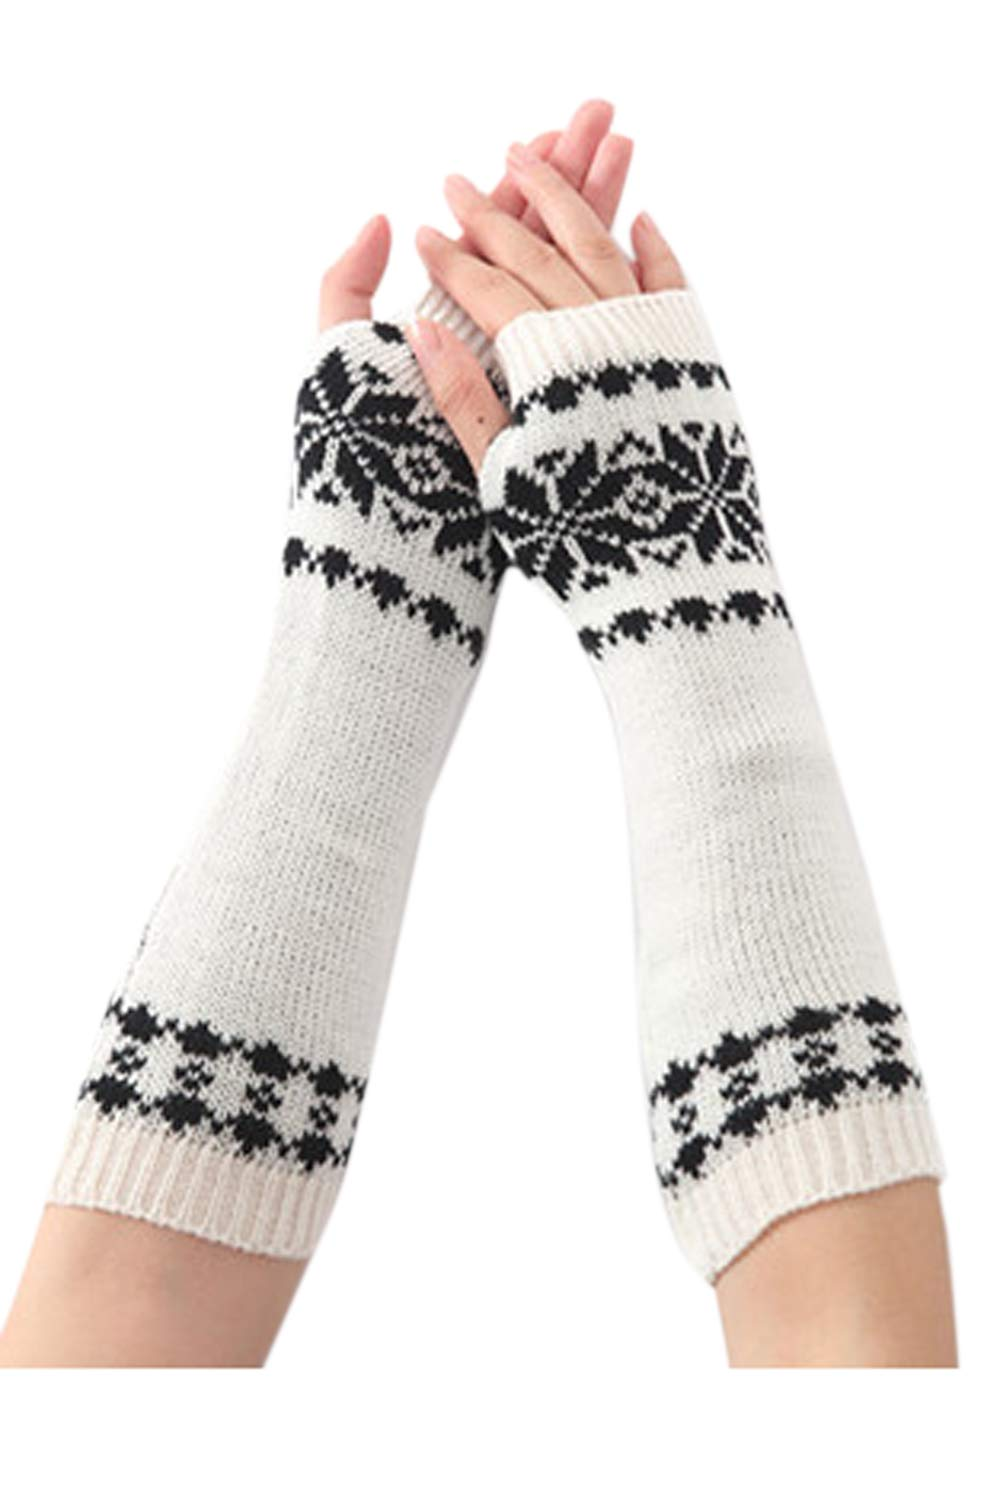 Womens Short Arm Warmer Warm Knitted Vintage Fingerless Gloves Girls Black F CAzin891110-Black-F